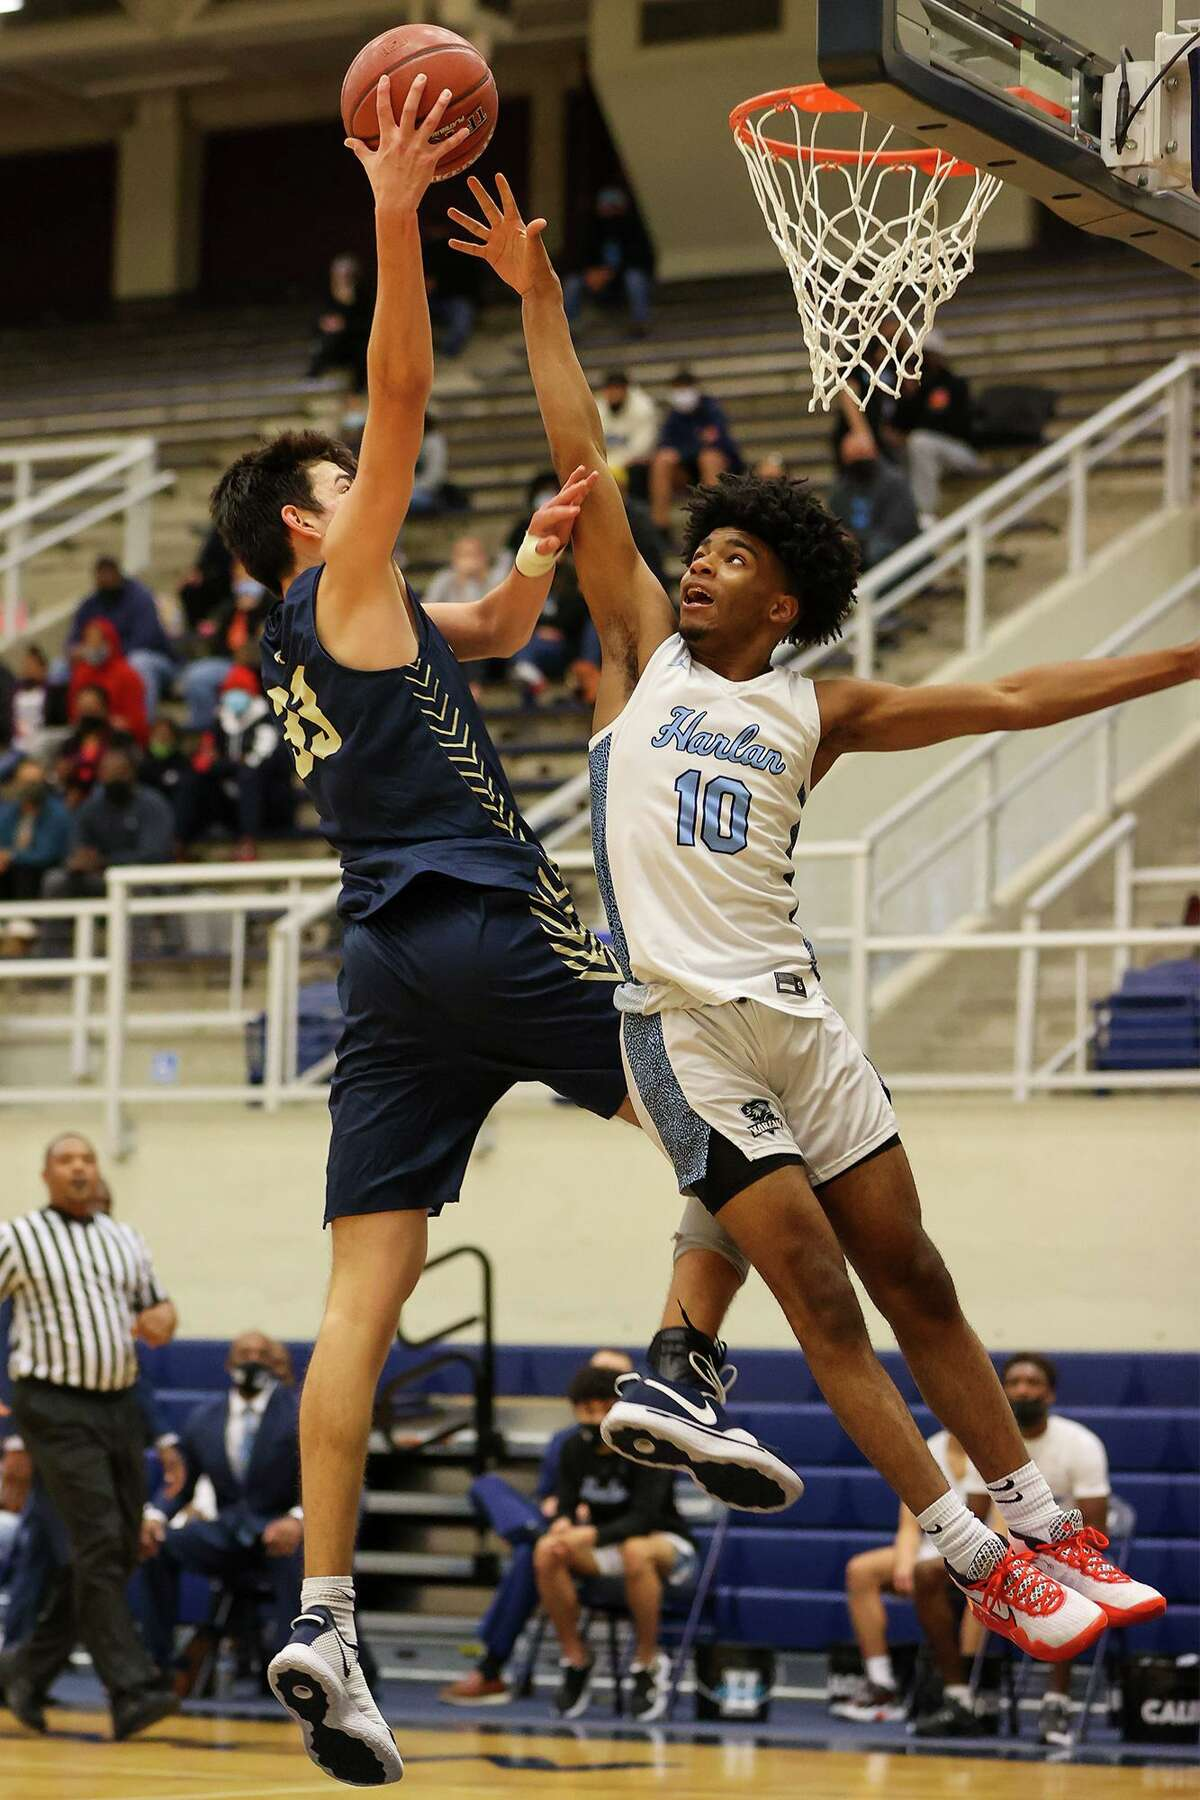 O'Connor's Josh Alcocer, left, drives to the basket as Harlan's Aashon Holmes defends during their District 29-6A boys basketball game at Paul Taylor Field House on Saturday, Jan. 9, 2021. O'Connor beat Harlan 59-50.